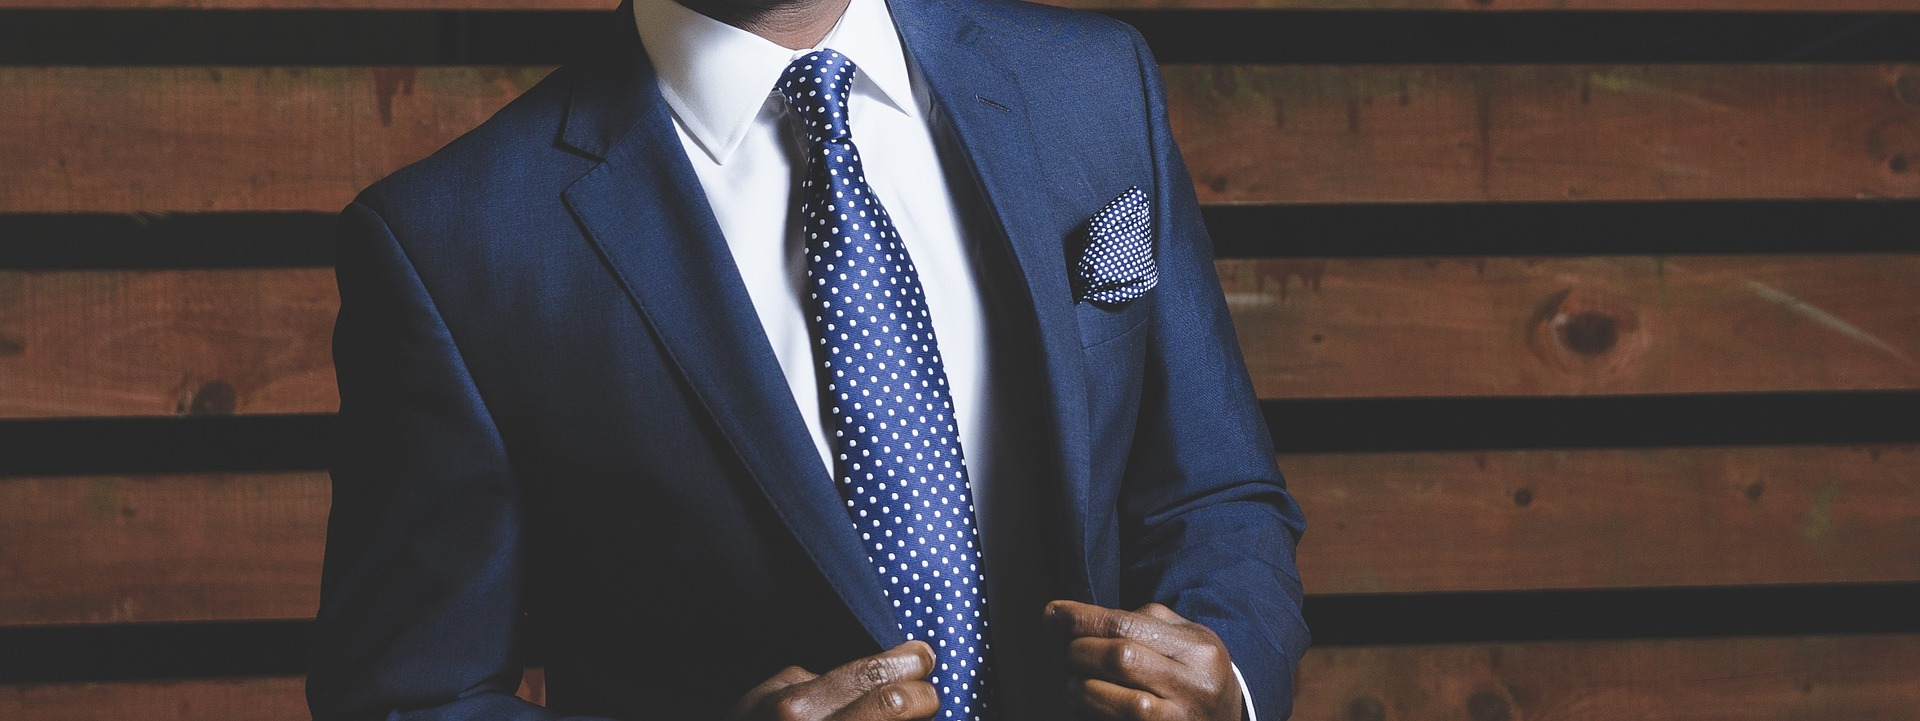 5 outfits that makes a good impression for job hunting